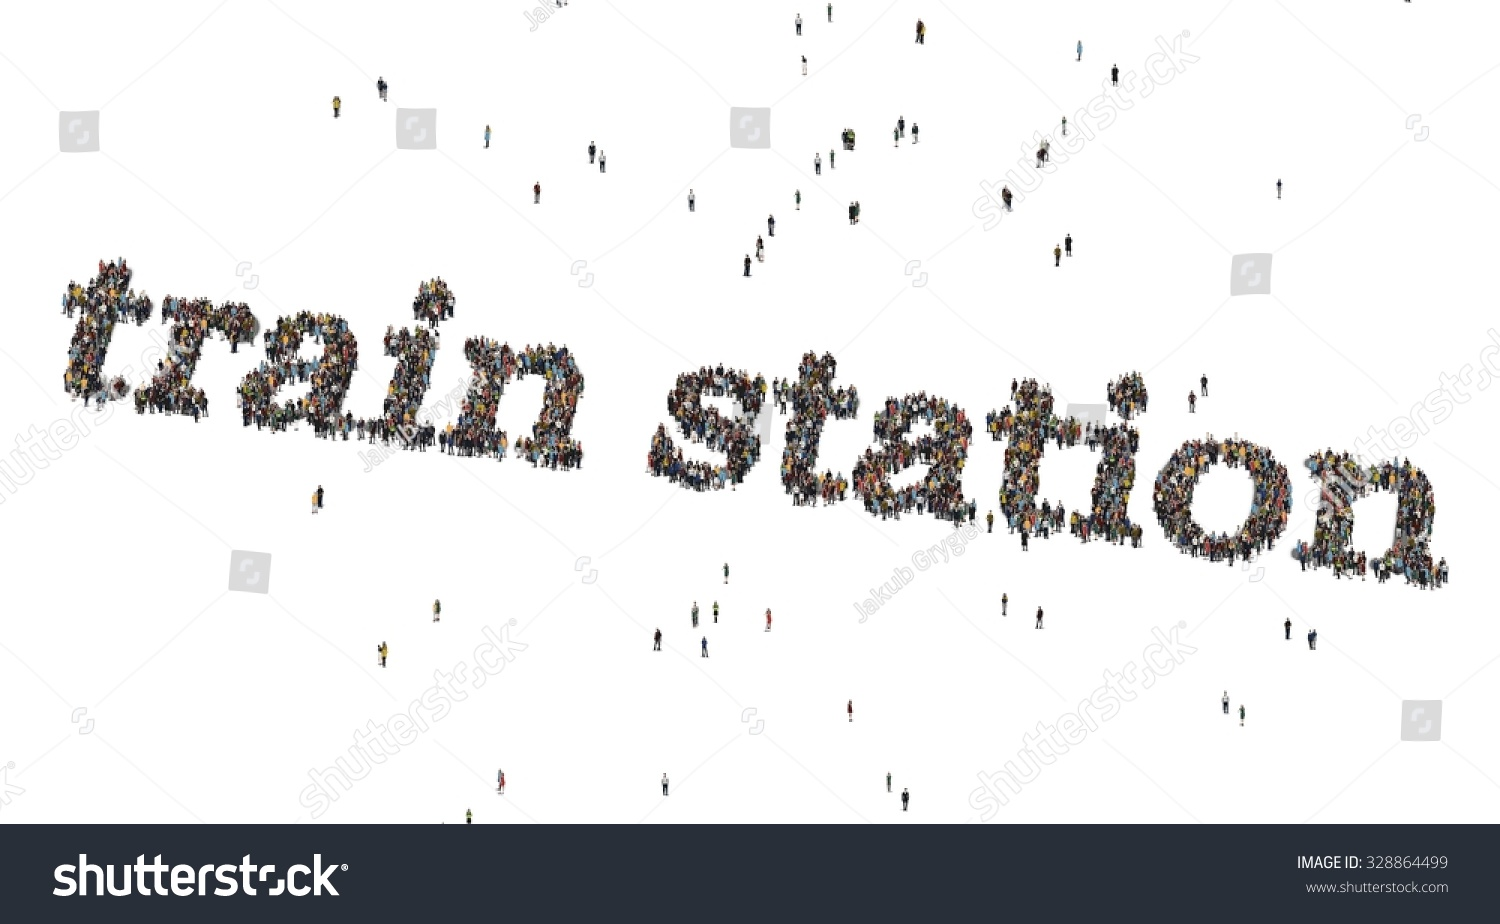 Train Station Words Crowd Above Stock Illustration 328864499